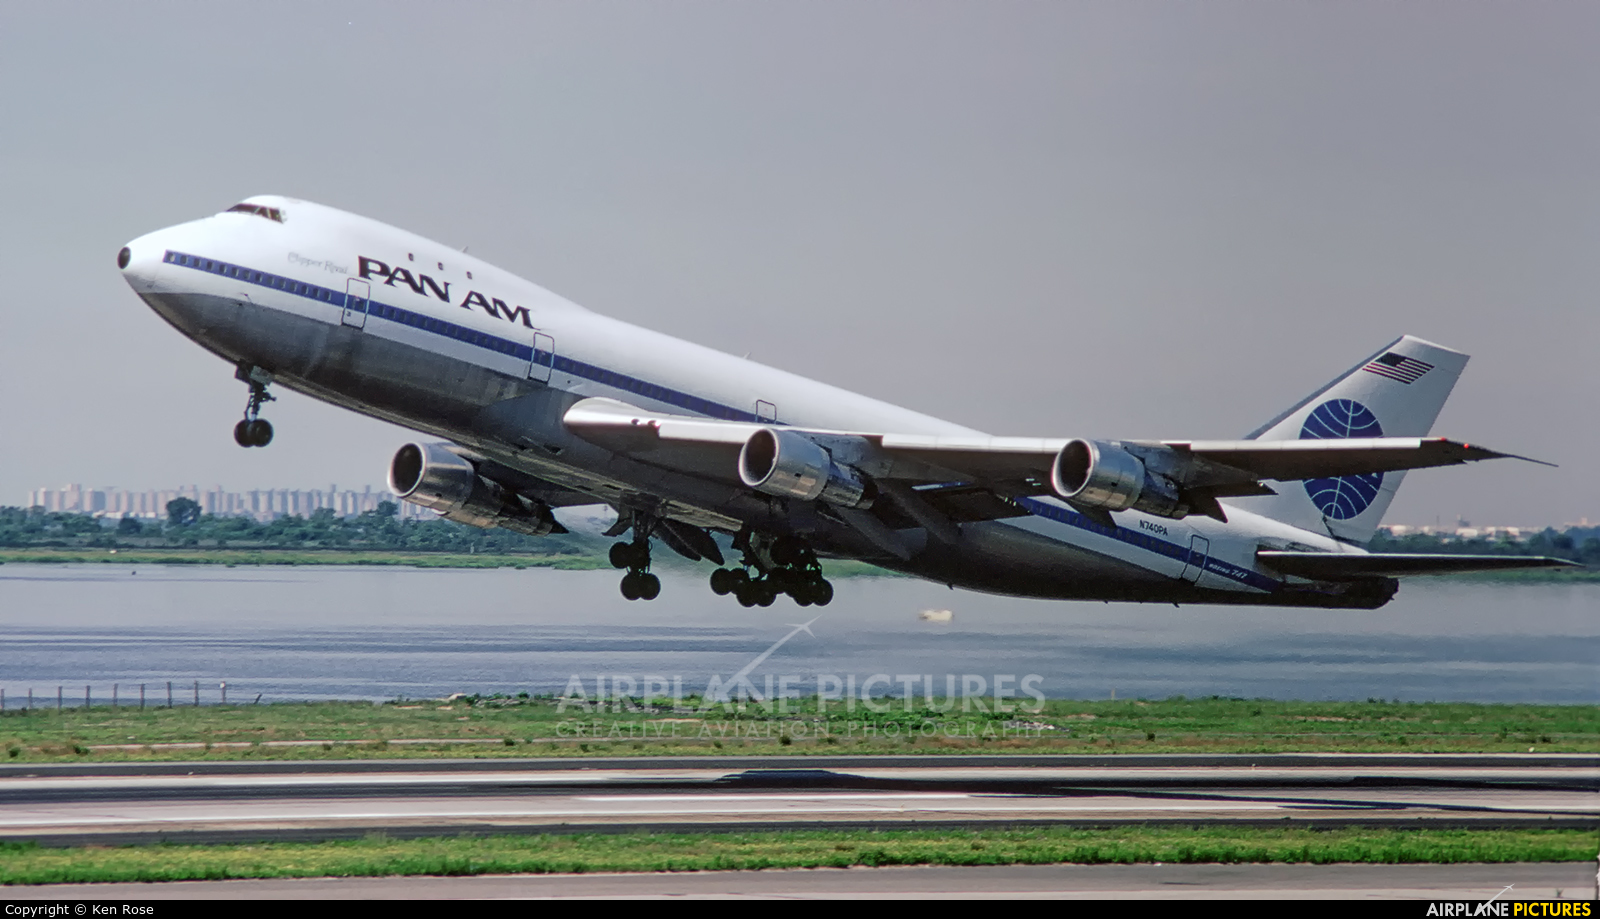 Pan Am N740PA aircraft at New York - John F. Kennedy Intl